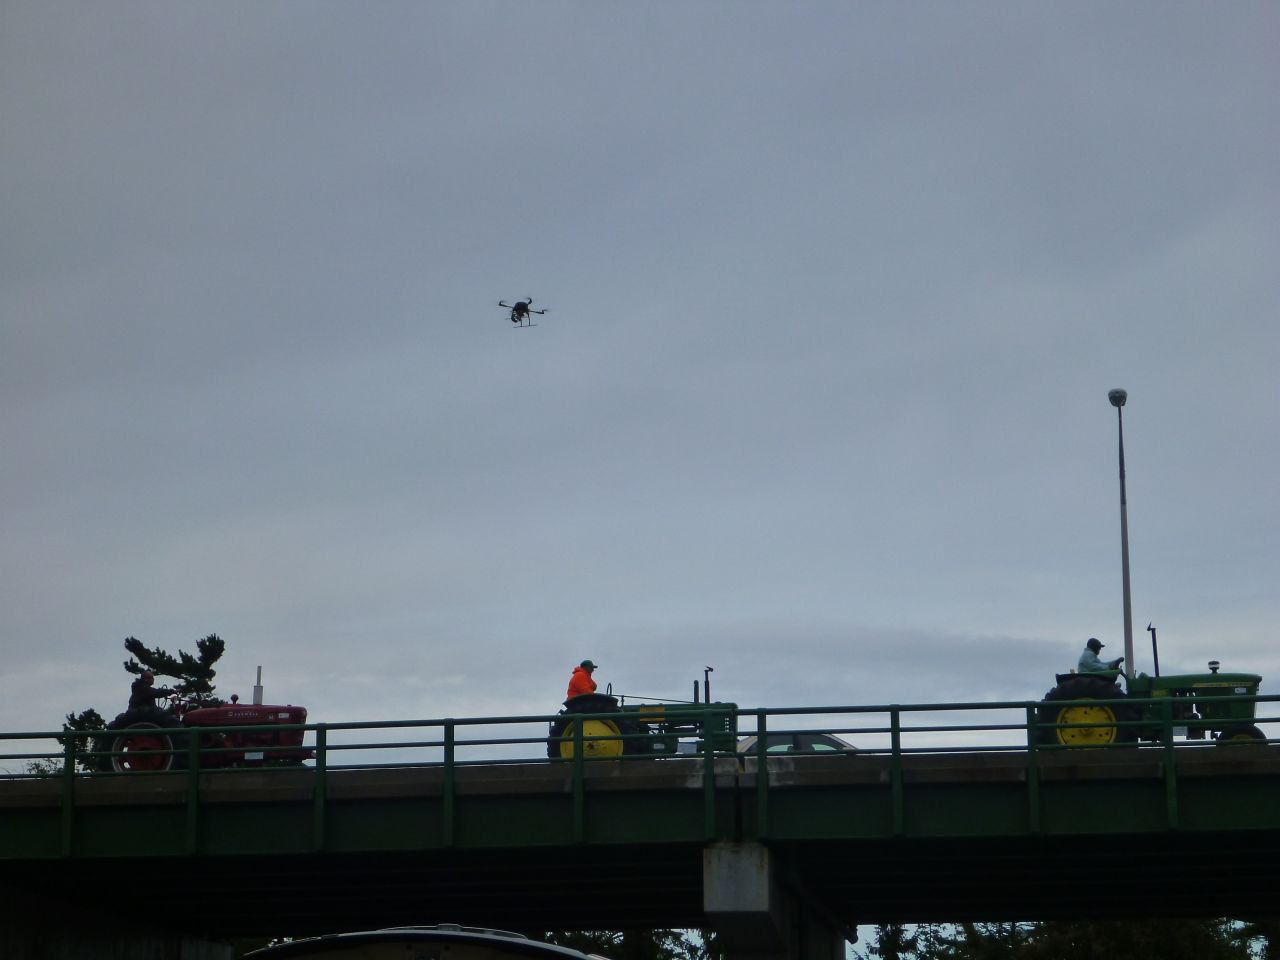 The Quadcopter And Tractors On The Bridge